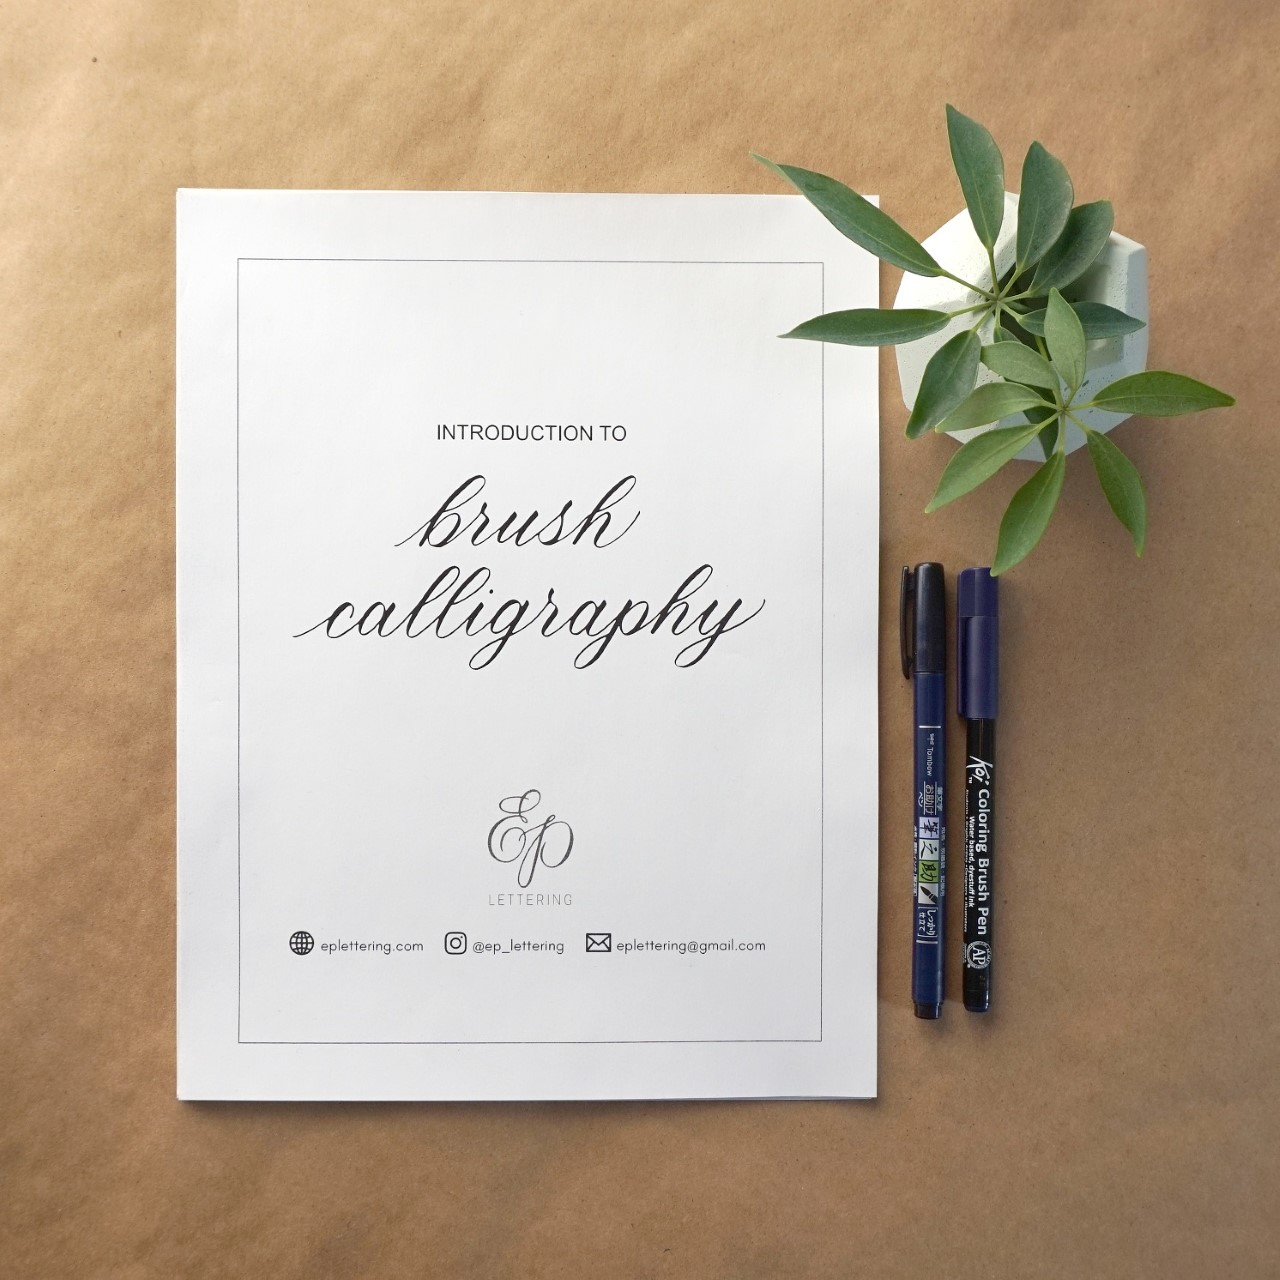 Introduction to Calligraphy